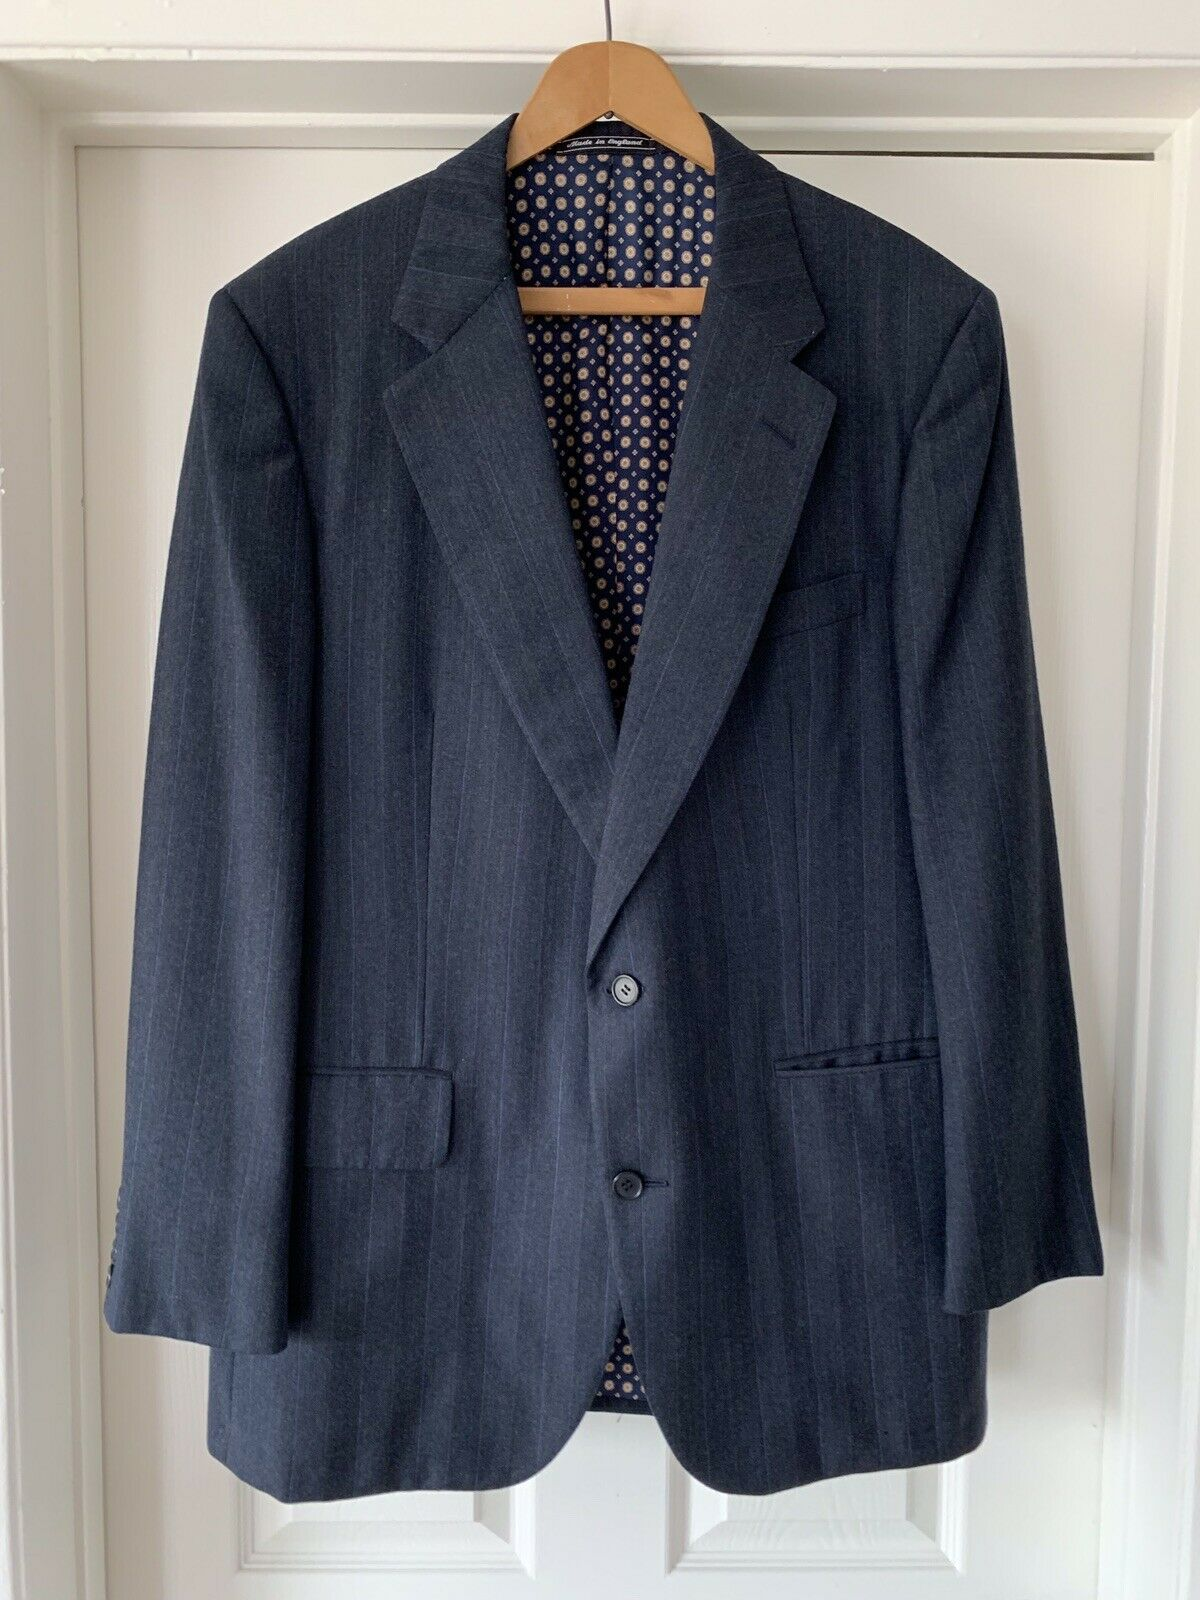 Carroll and Co Wool Blazer Hand Made In England